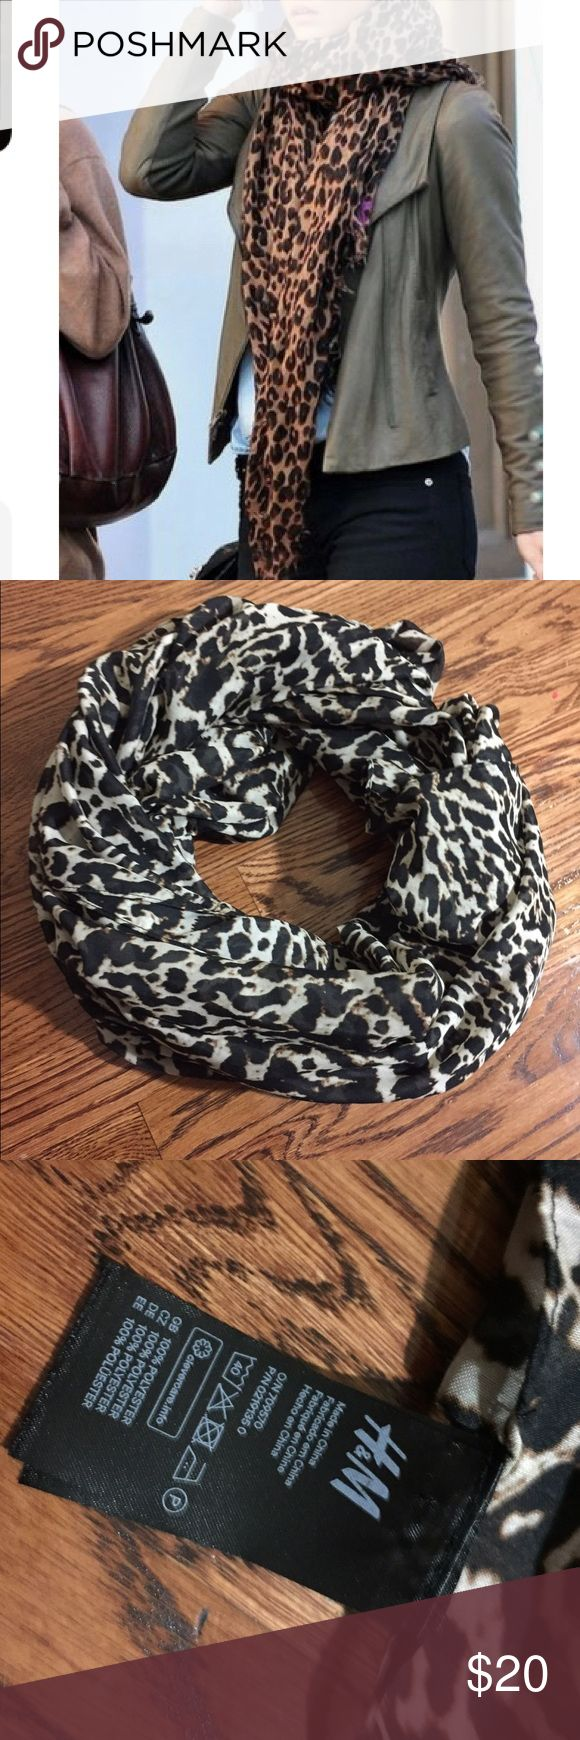 Cheetah scarf Beautiful new H&M scarf. Not an infinity scarf. Details in pictures. Questions , ask below.  🚫NO TRADES 🚫NO HOLDS 🚫NO NEGATIVITY 🚫🚫NO LOW BLOWS, will be DECLINED H&M Accessories Scarves & Wraps